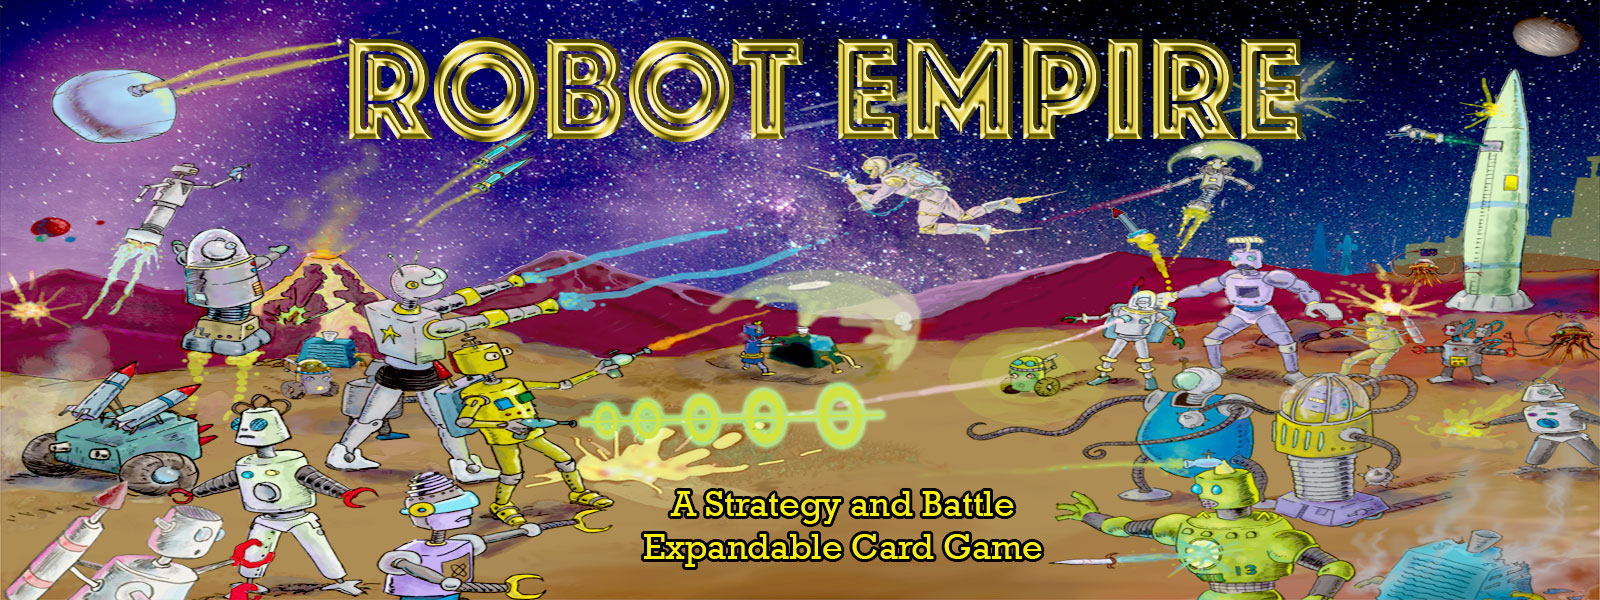 Robot Empire